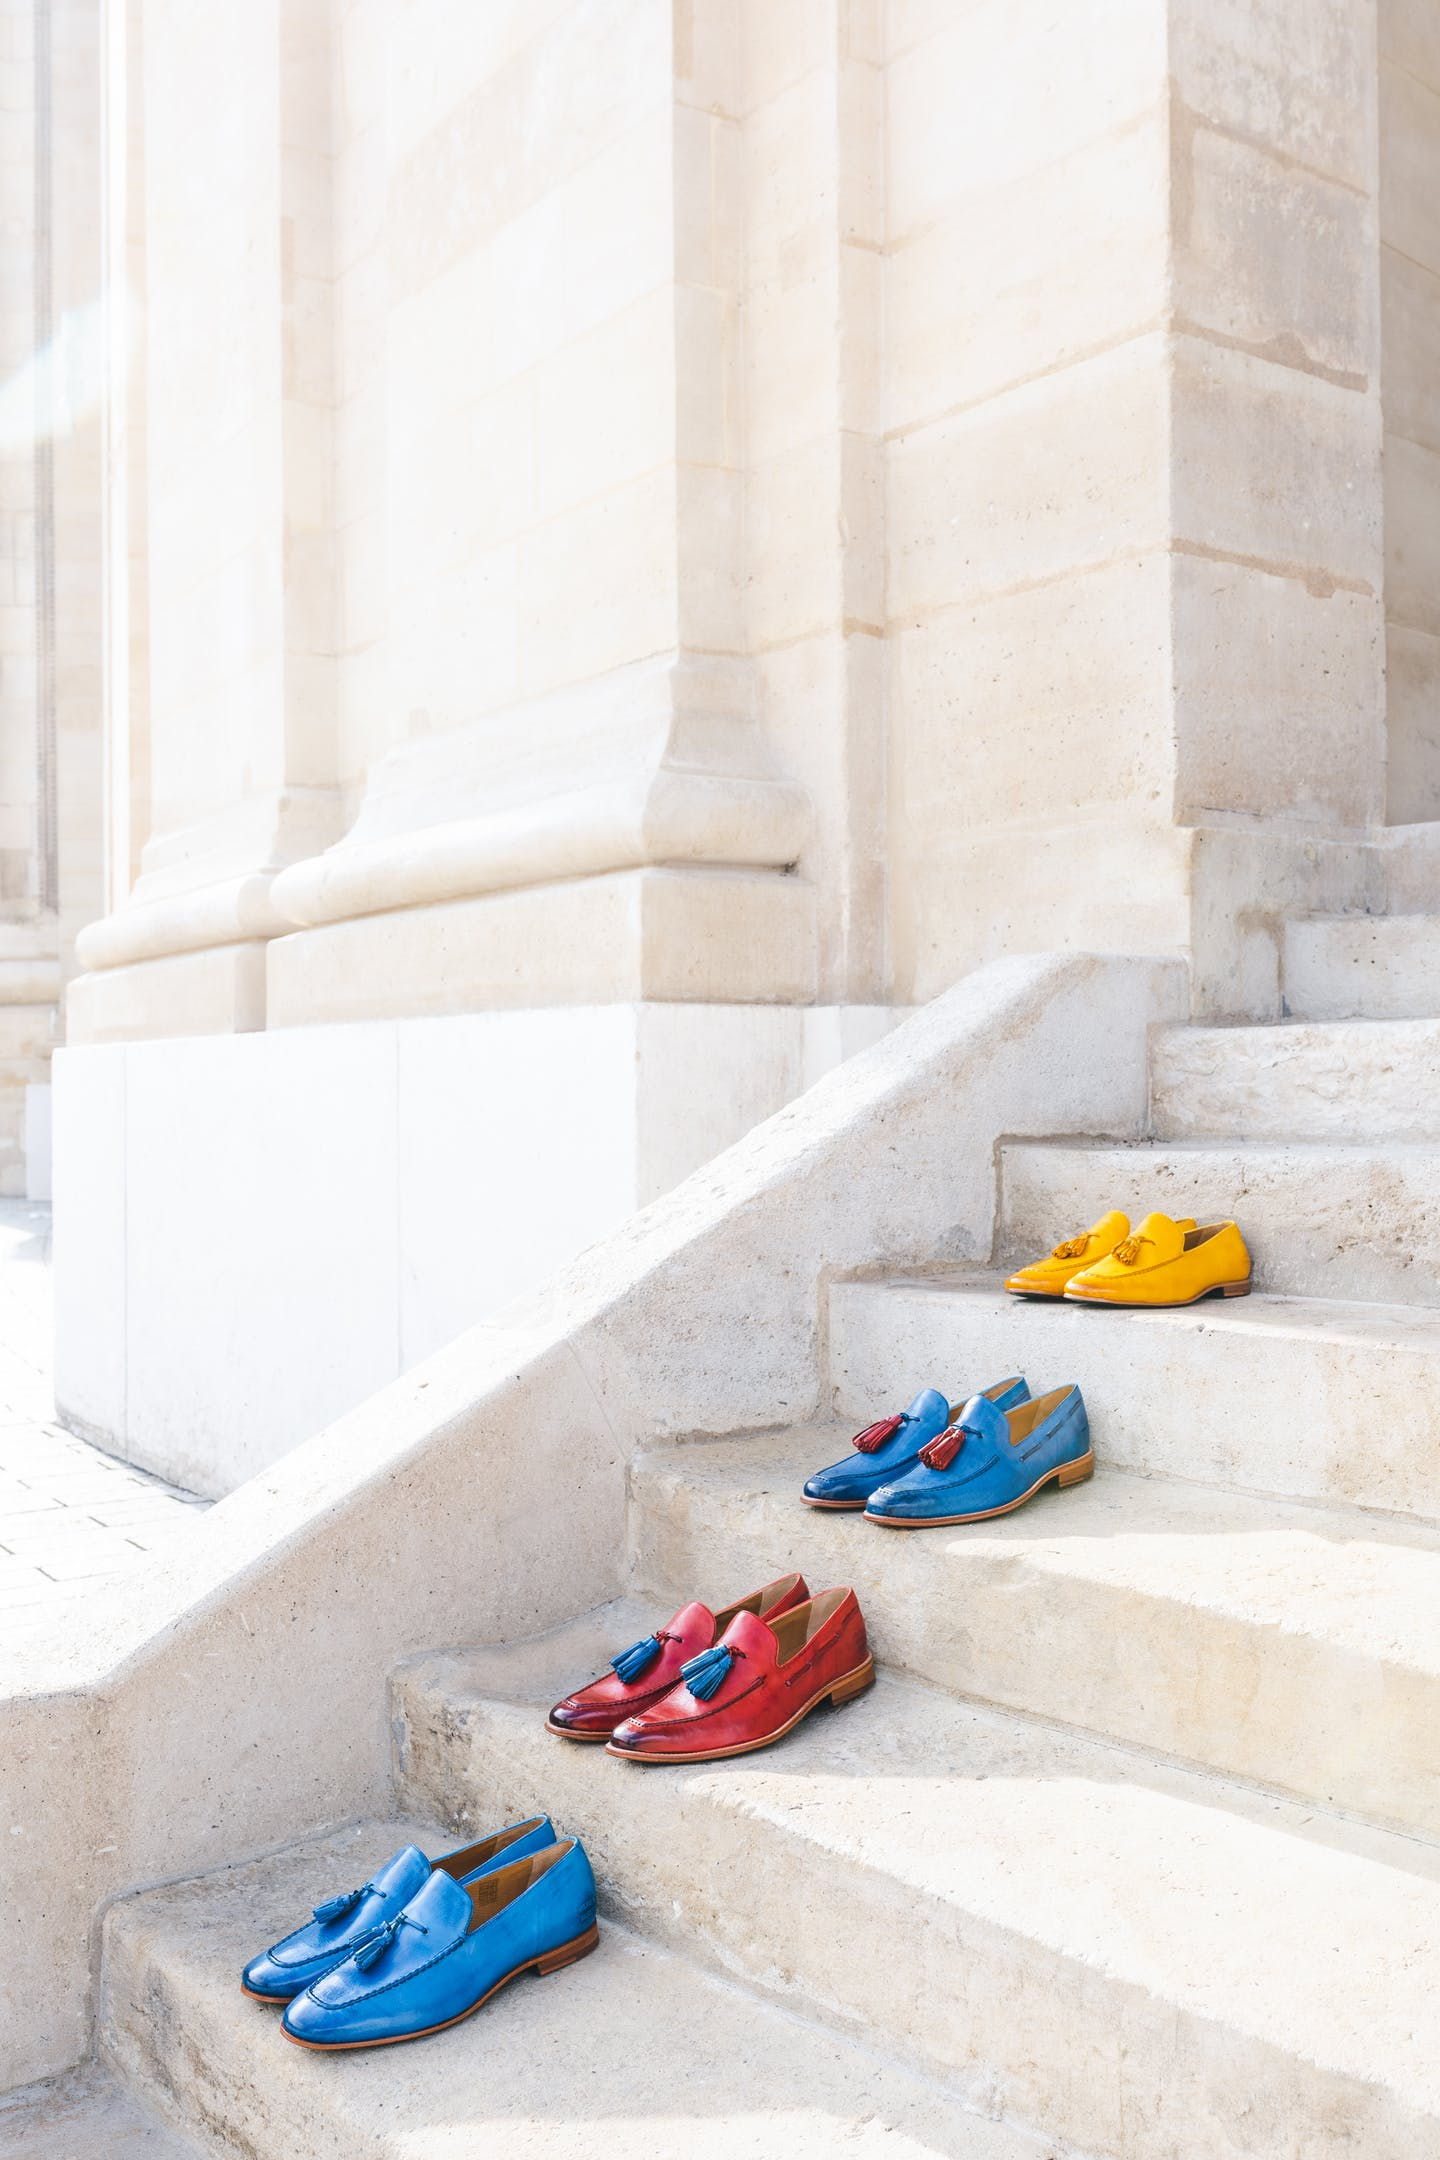 Men's colourful loafers by Melvin & Hamilton